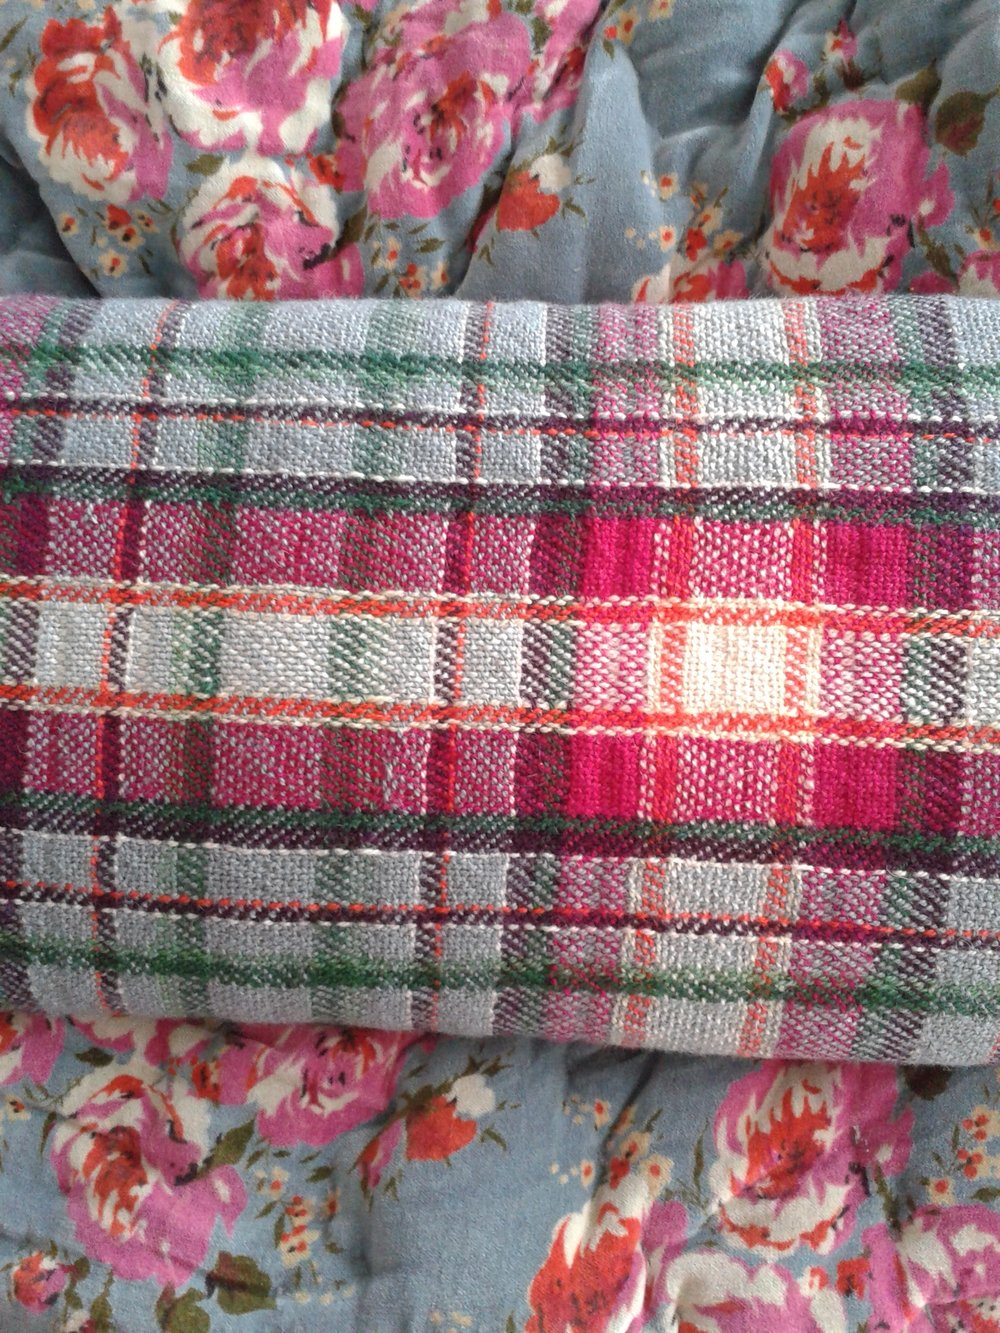 Seat cover made on commission by Jo Aylwin with the inspirational throw provided by client